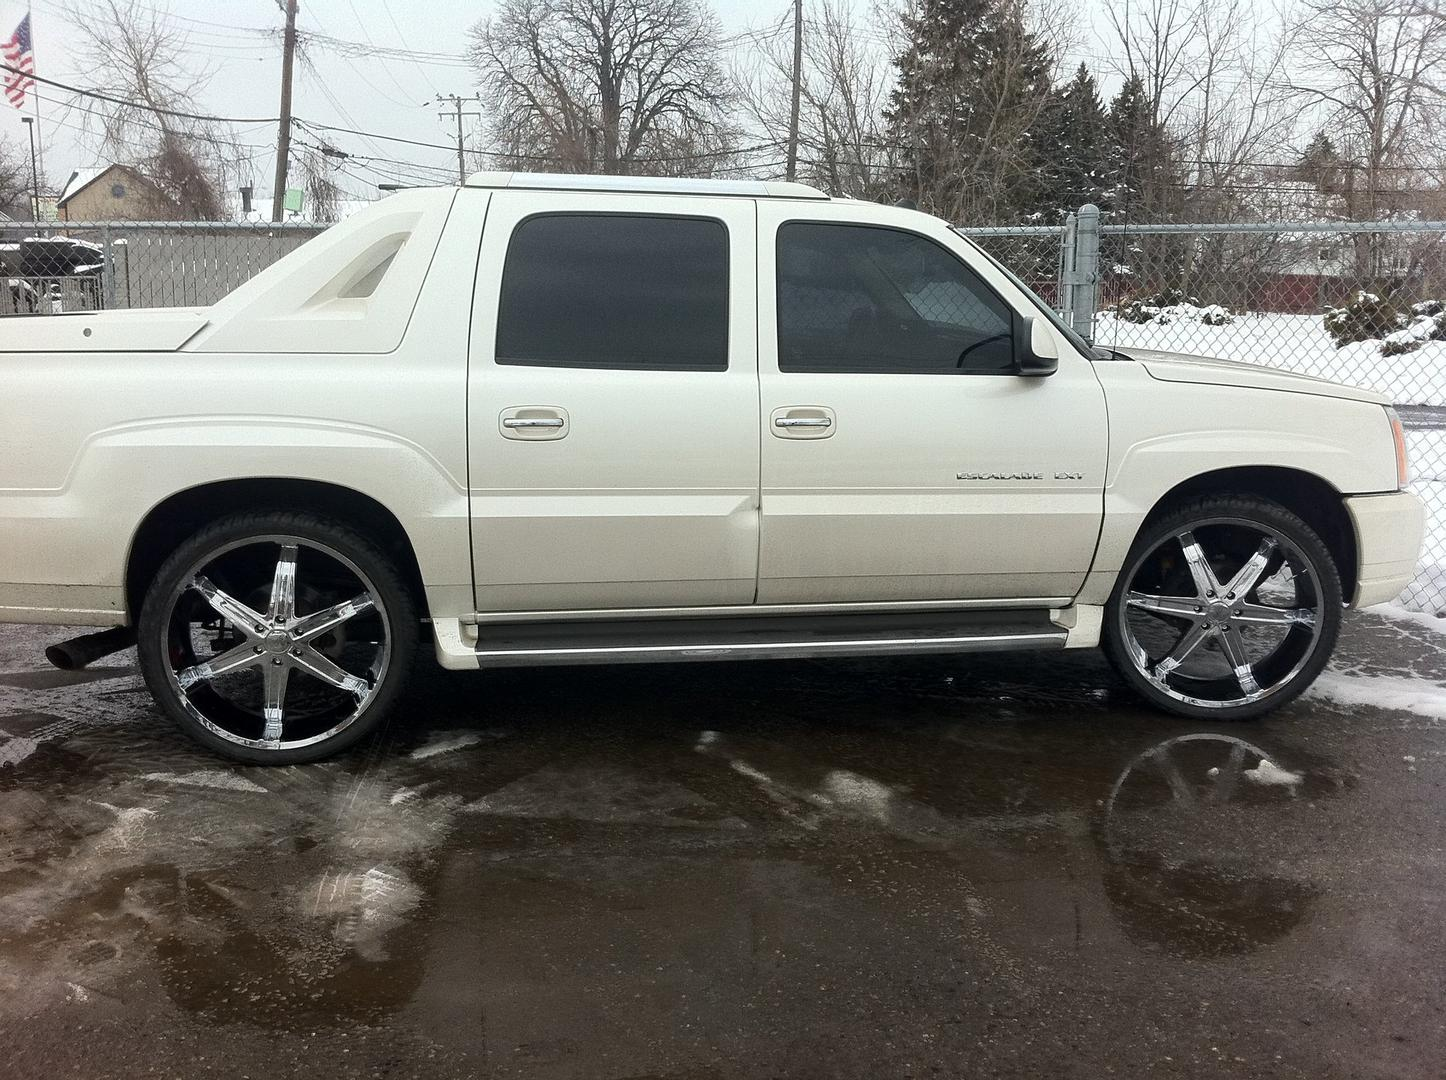 Cadillac Escalade EXT white #4